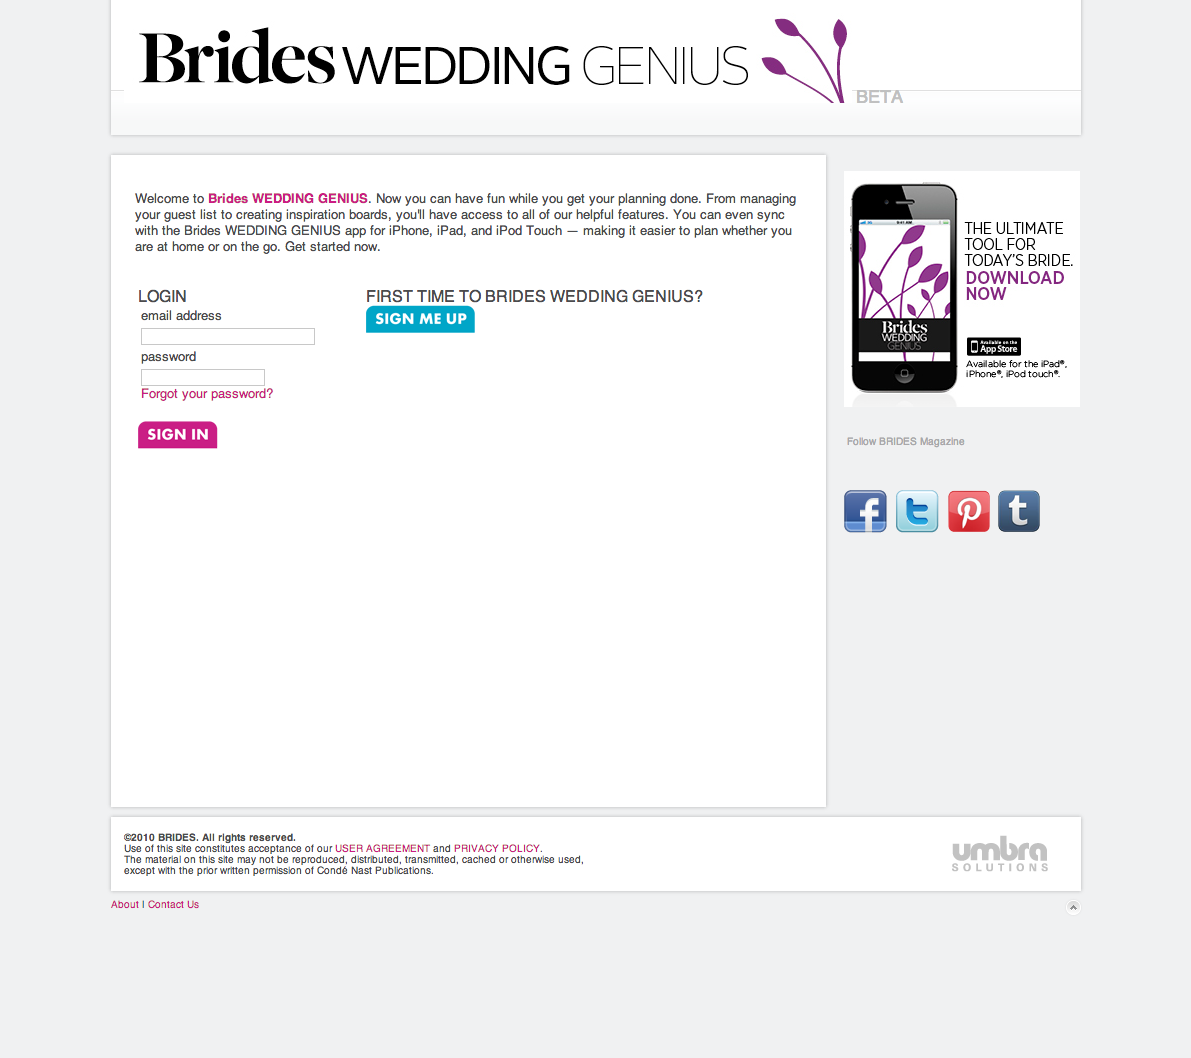 Brides+Wedding+Genius1